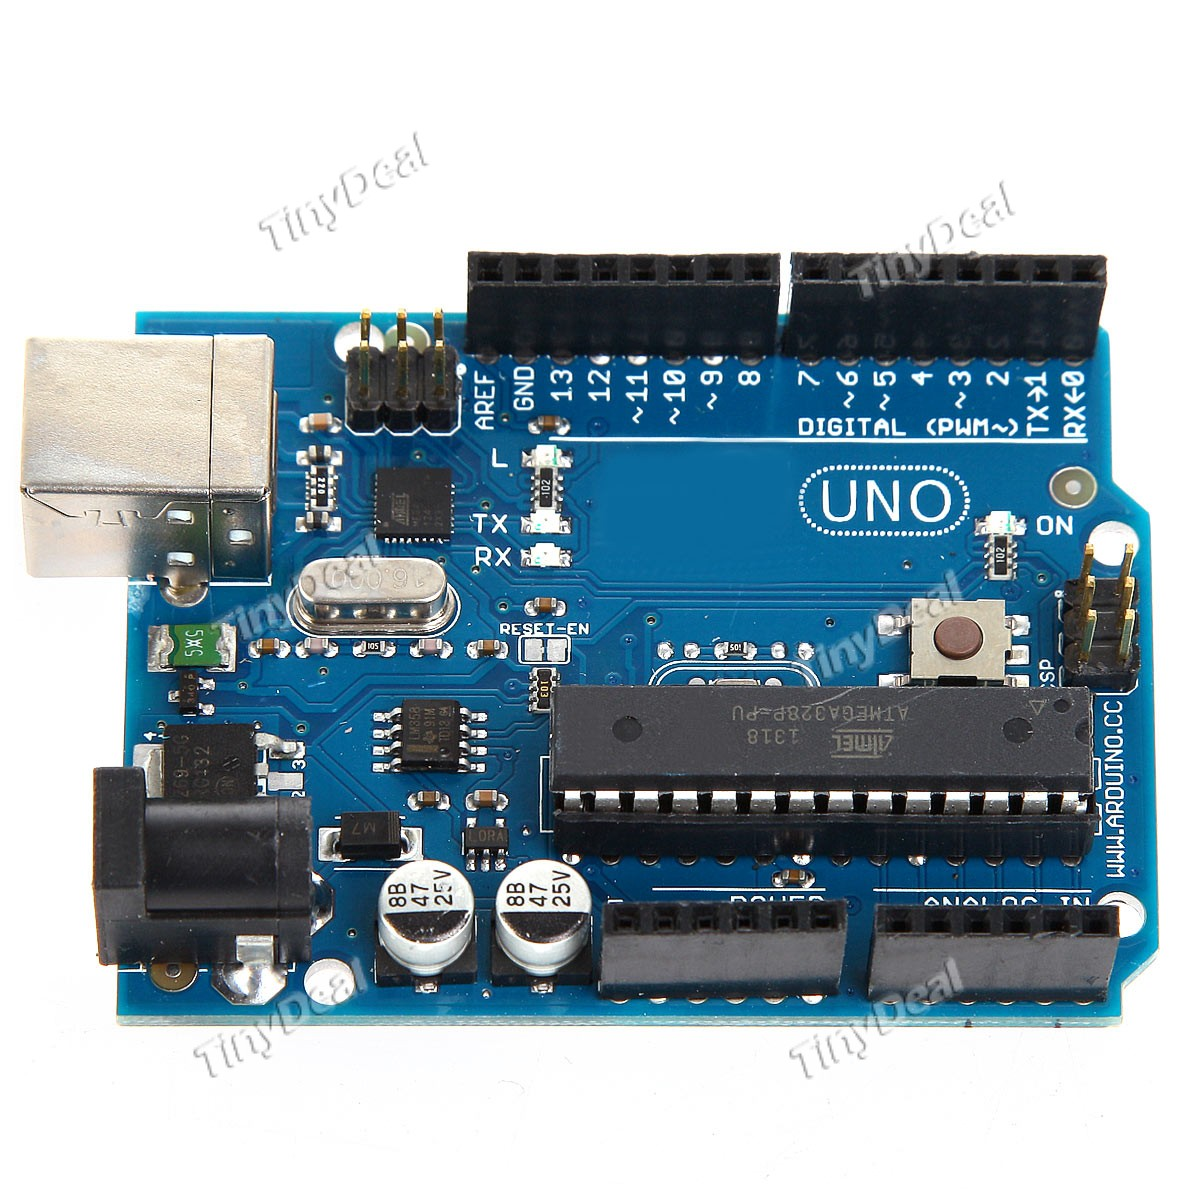 framboise_uno_electronics_development_microcontroller_for_arduino.jpg